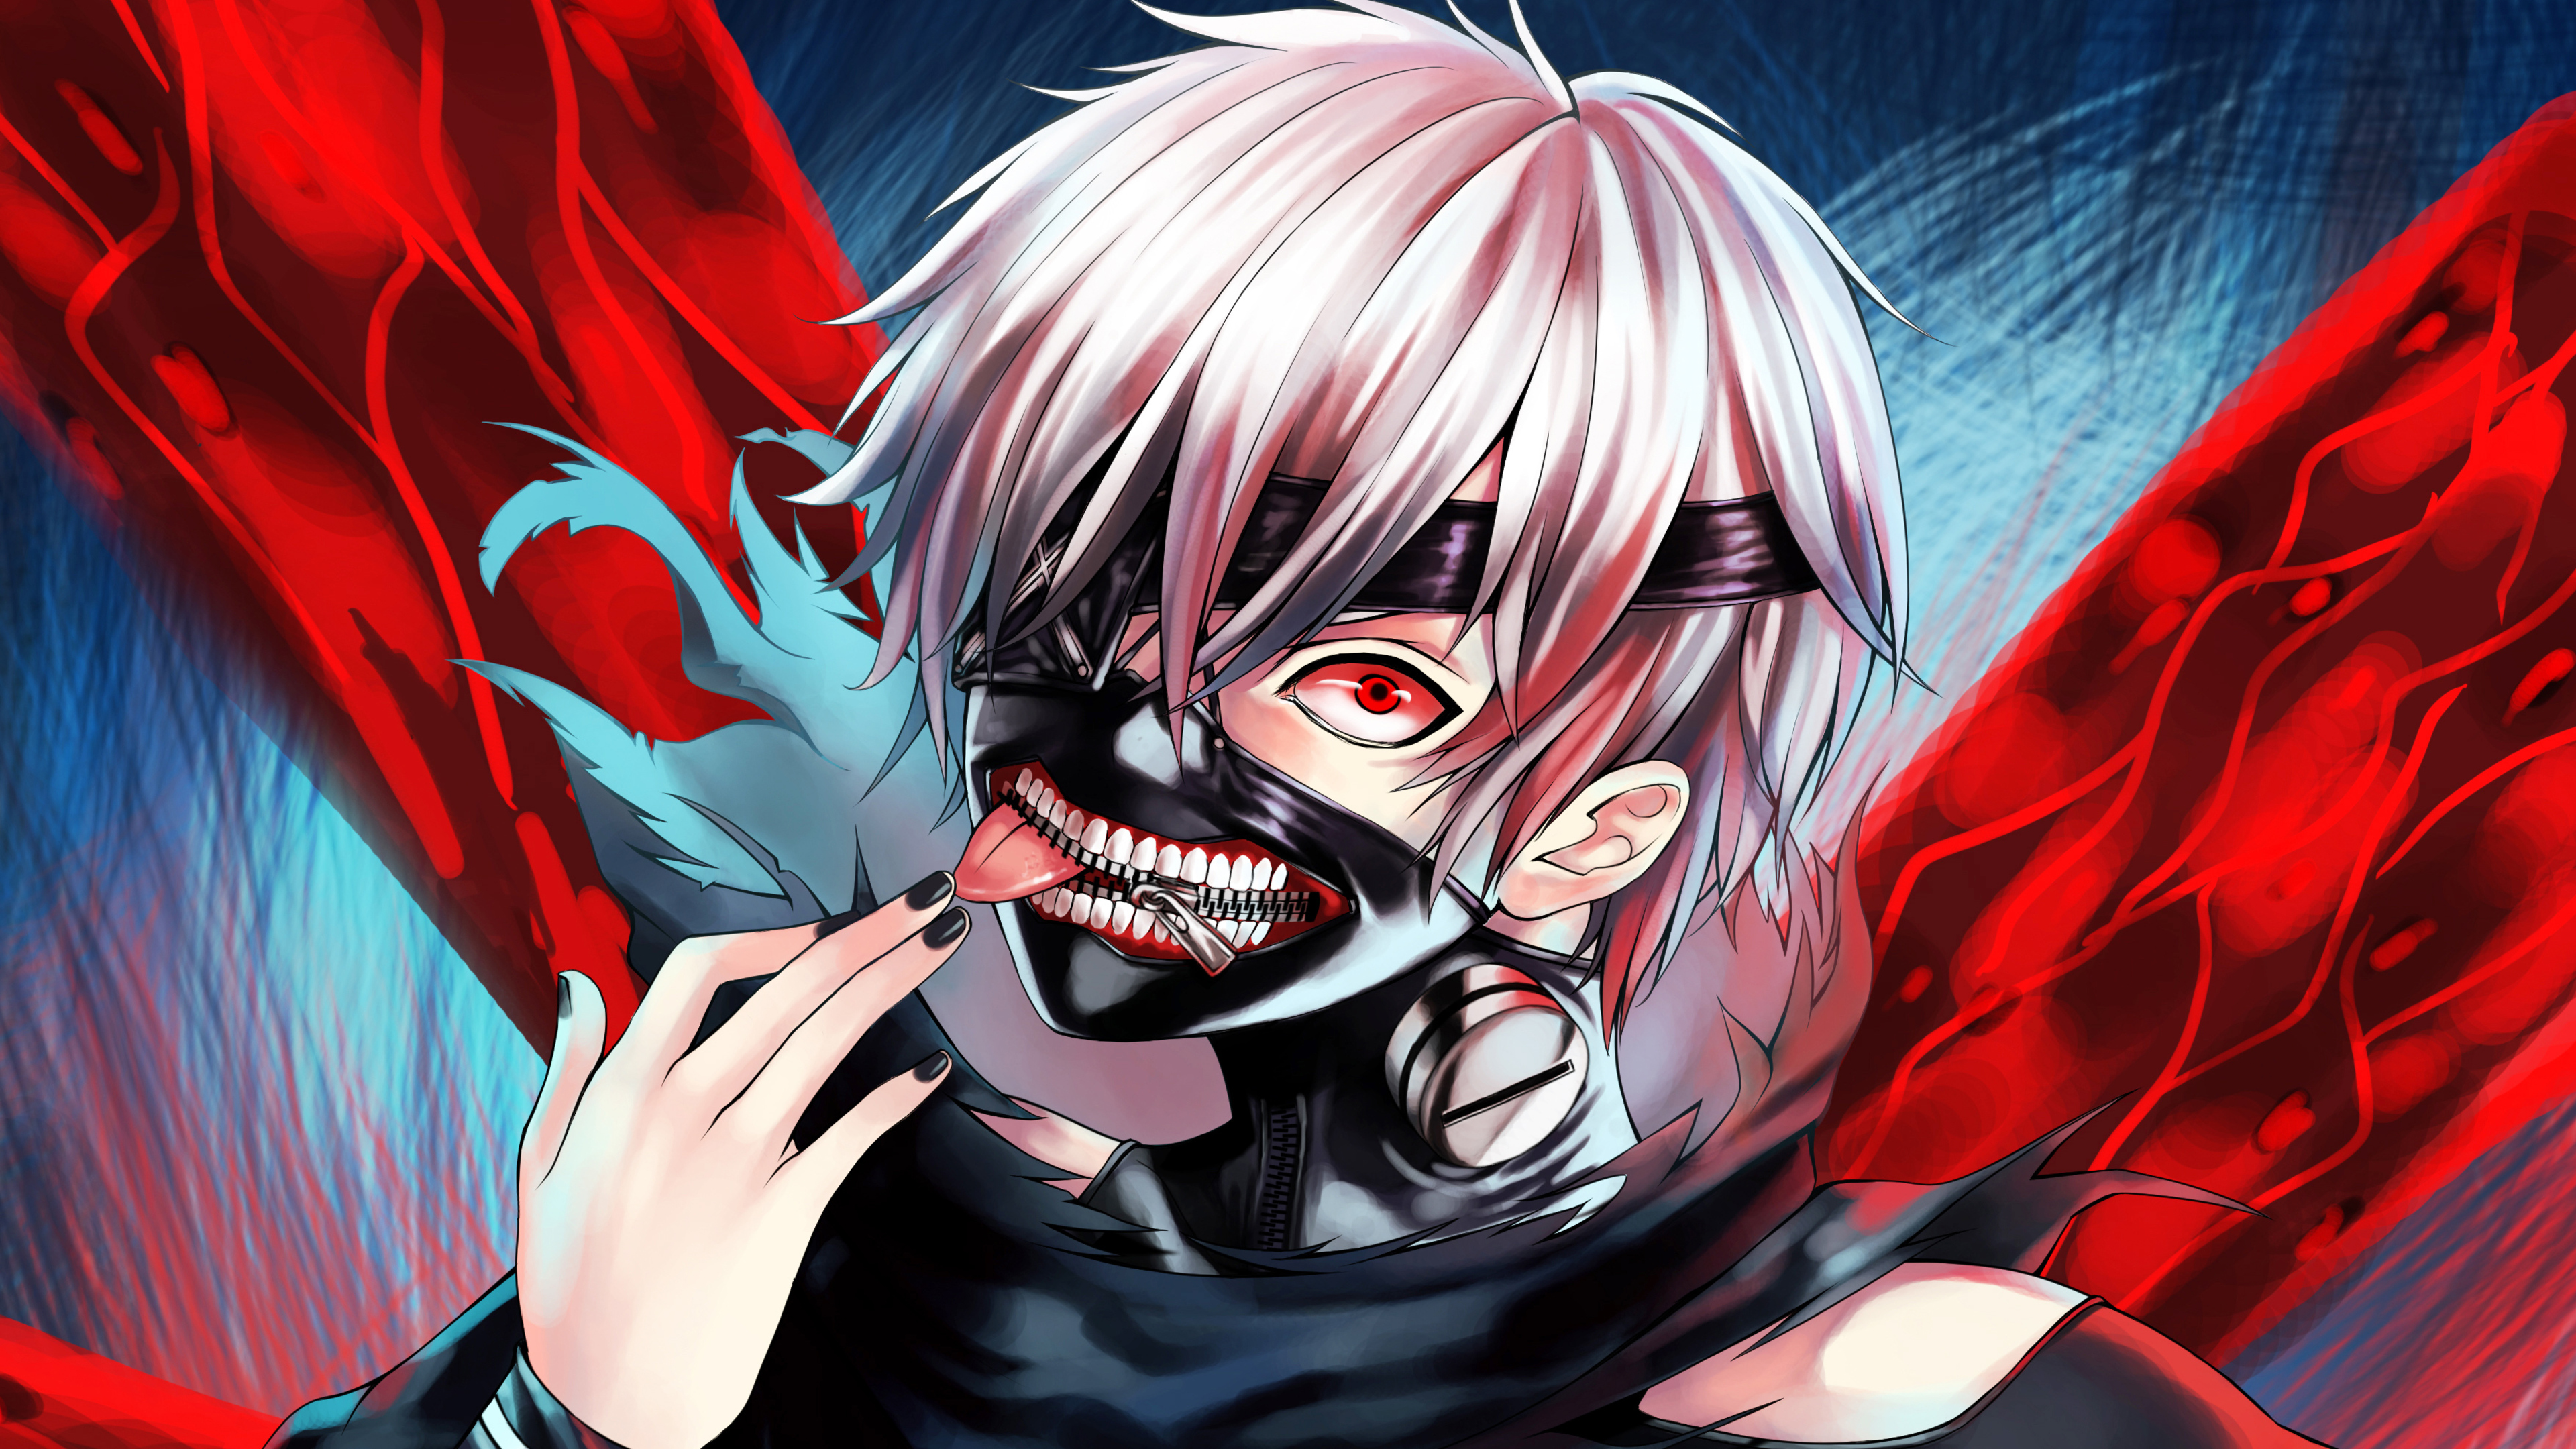 3840x2160 Tokyo Ghoul Anime 4k 4k HD 4k Wallpapers, Images, Backgrounds, Photos and Pictures